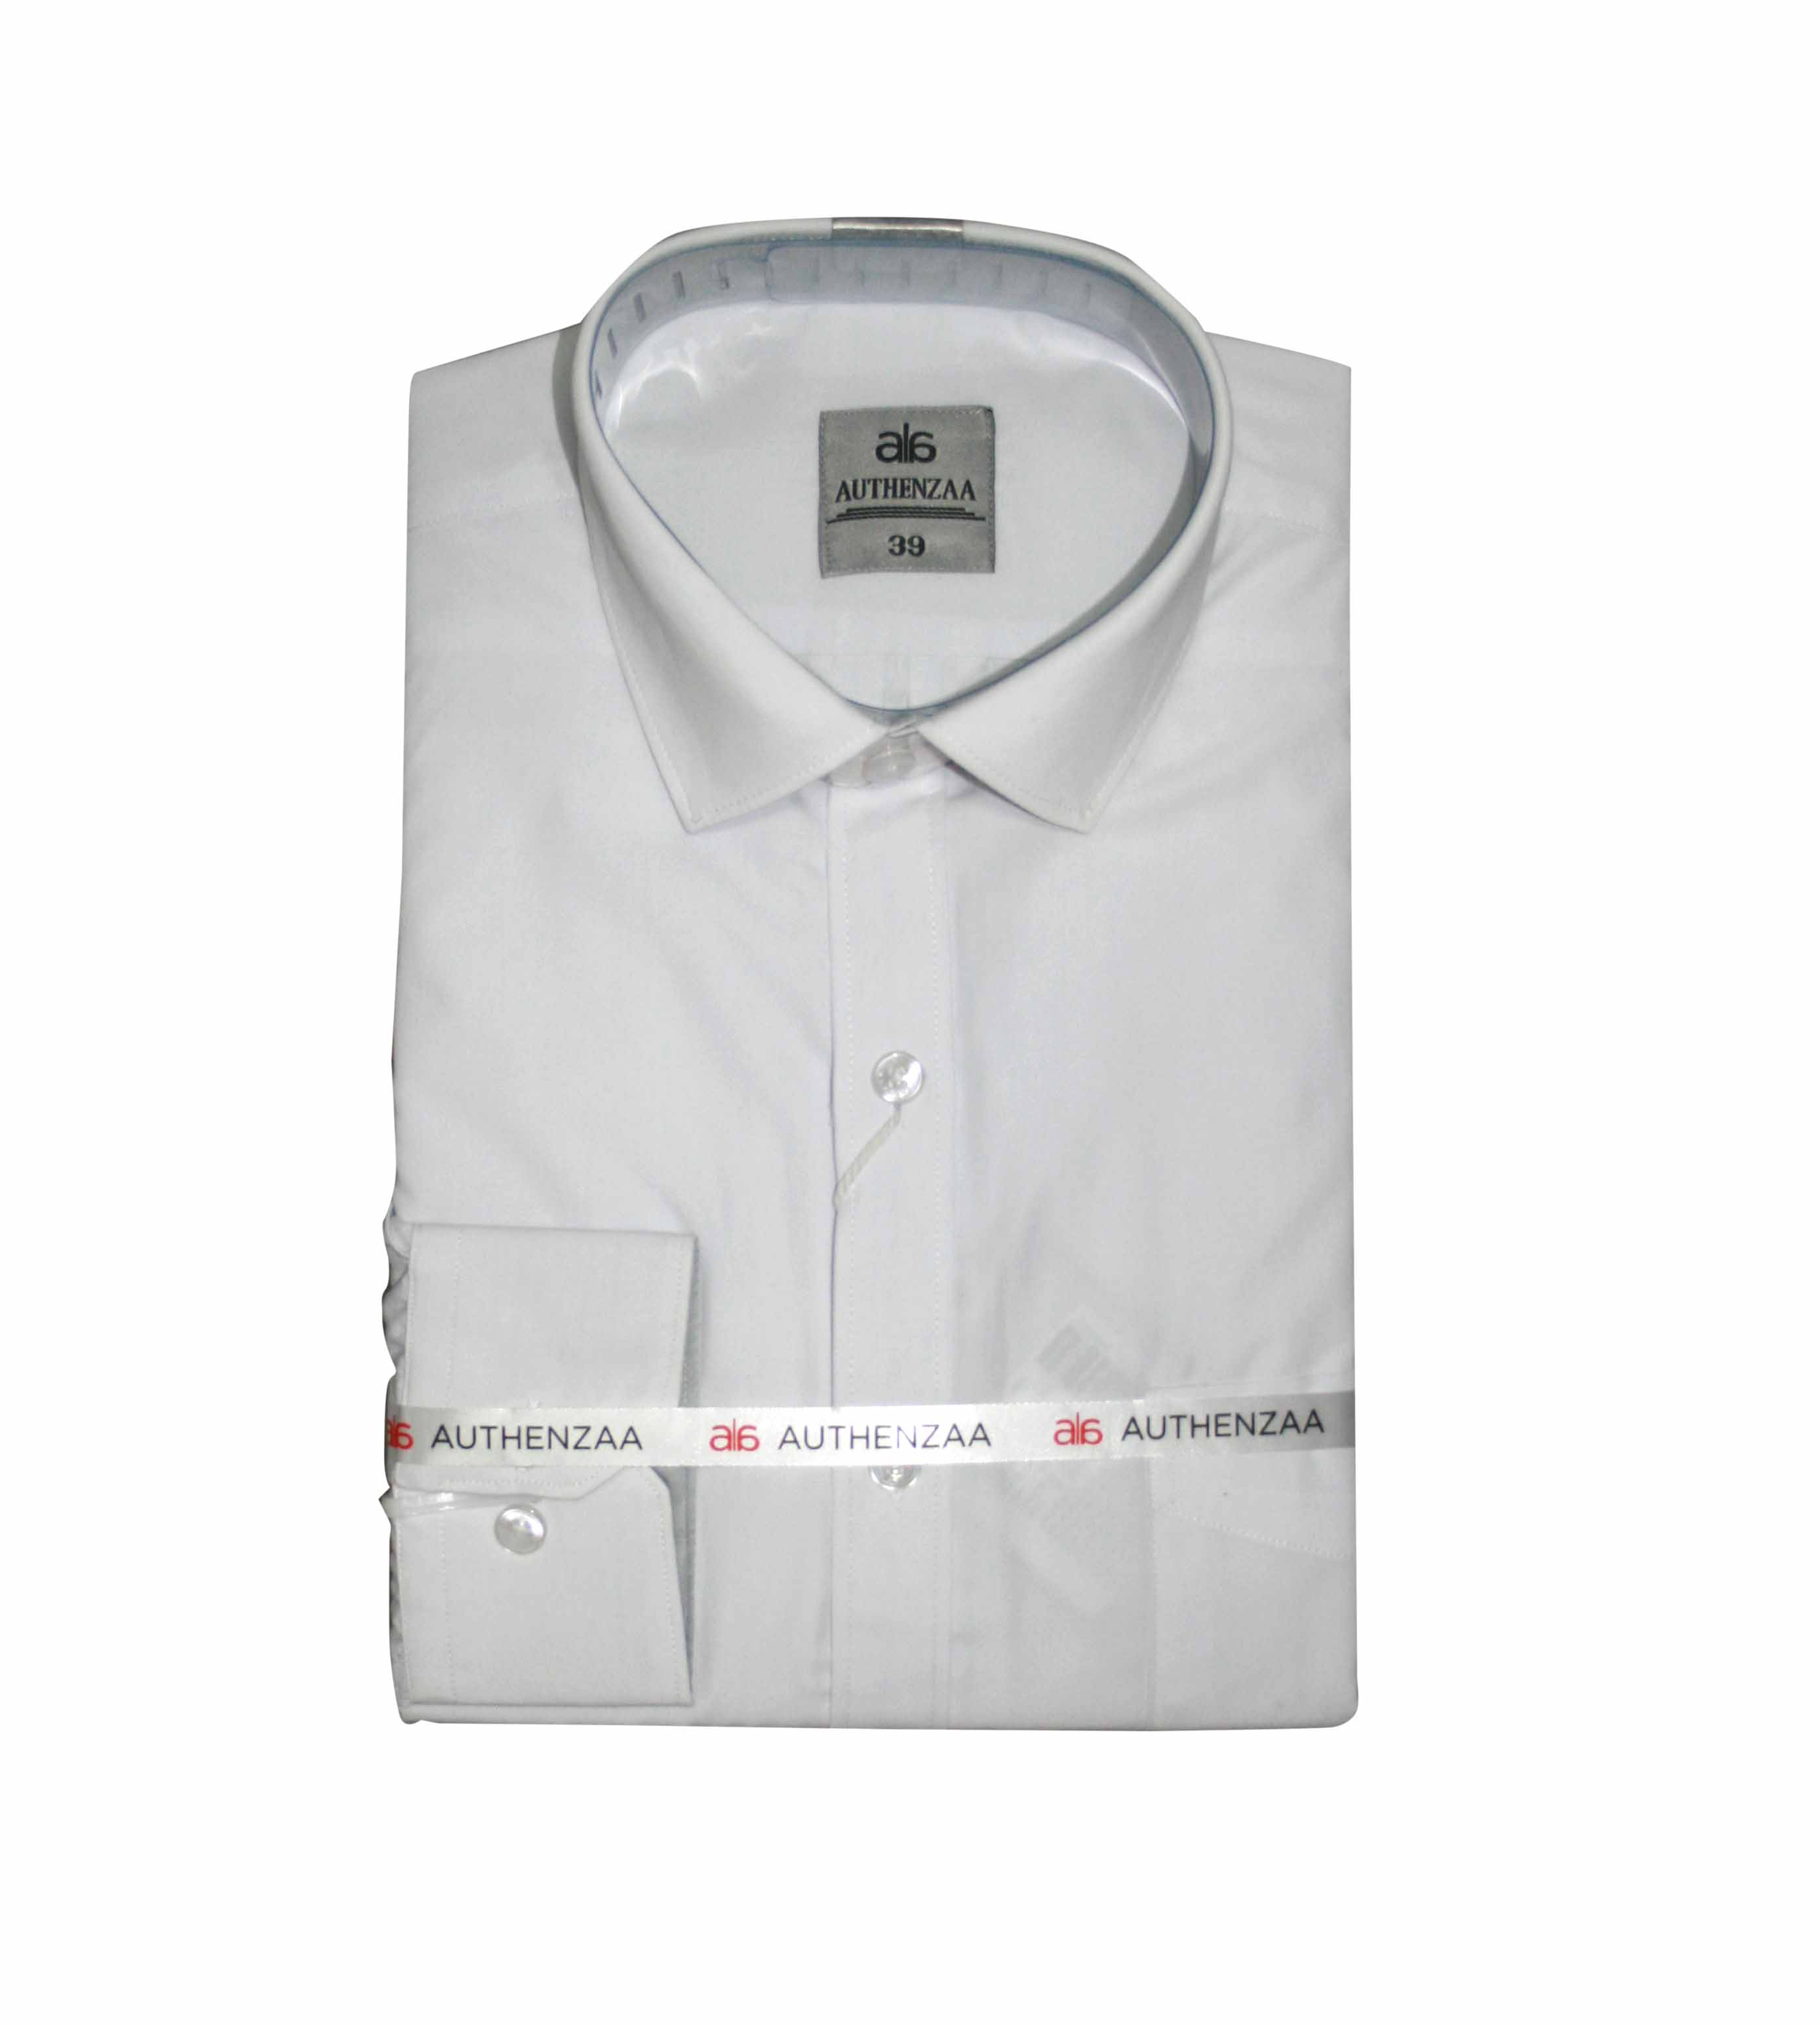 BT WHITE FANCY 2019-WHITE 07 FORMAL SHIRT